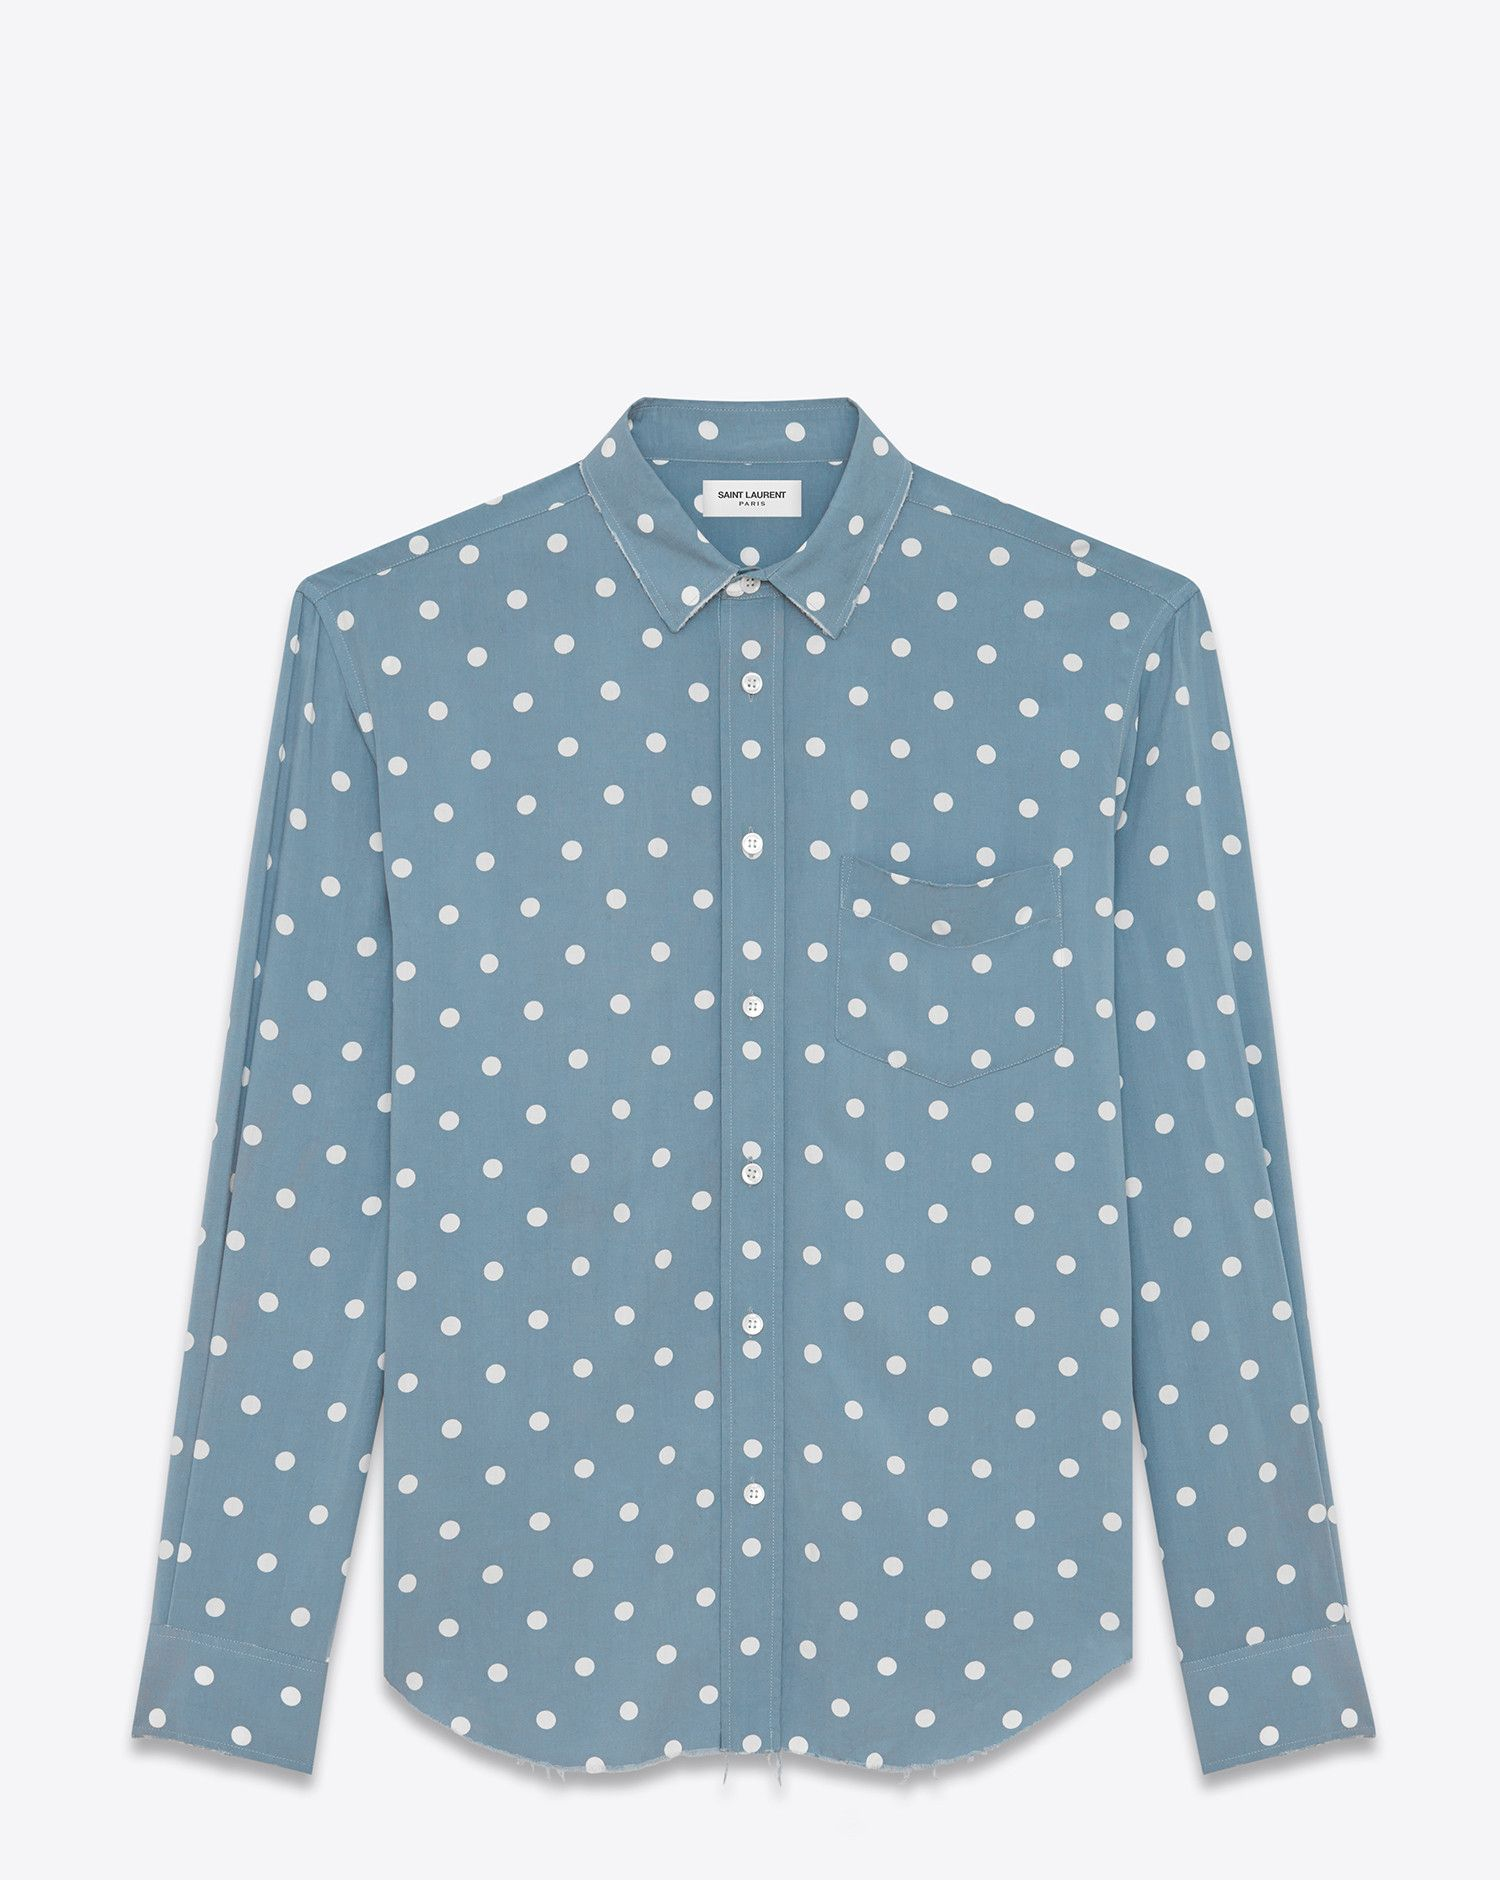 Saint Laurent Oversized Signature YVES Collar Shirt In Blue And White Polka Dot Printed Viscose 550 EUR.